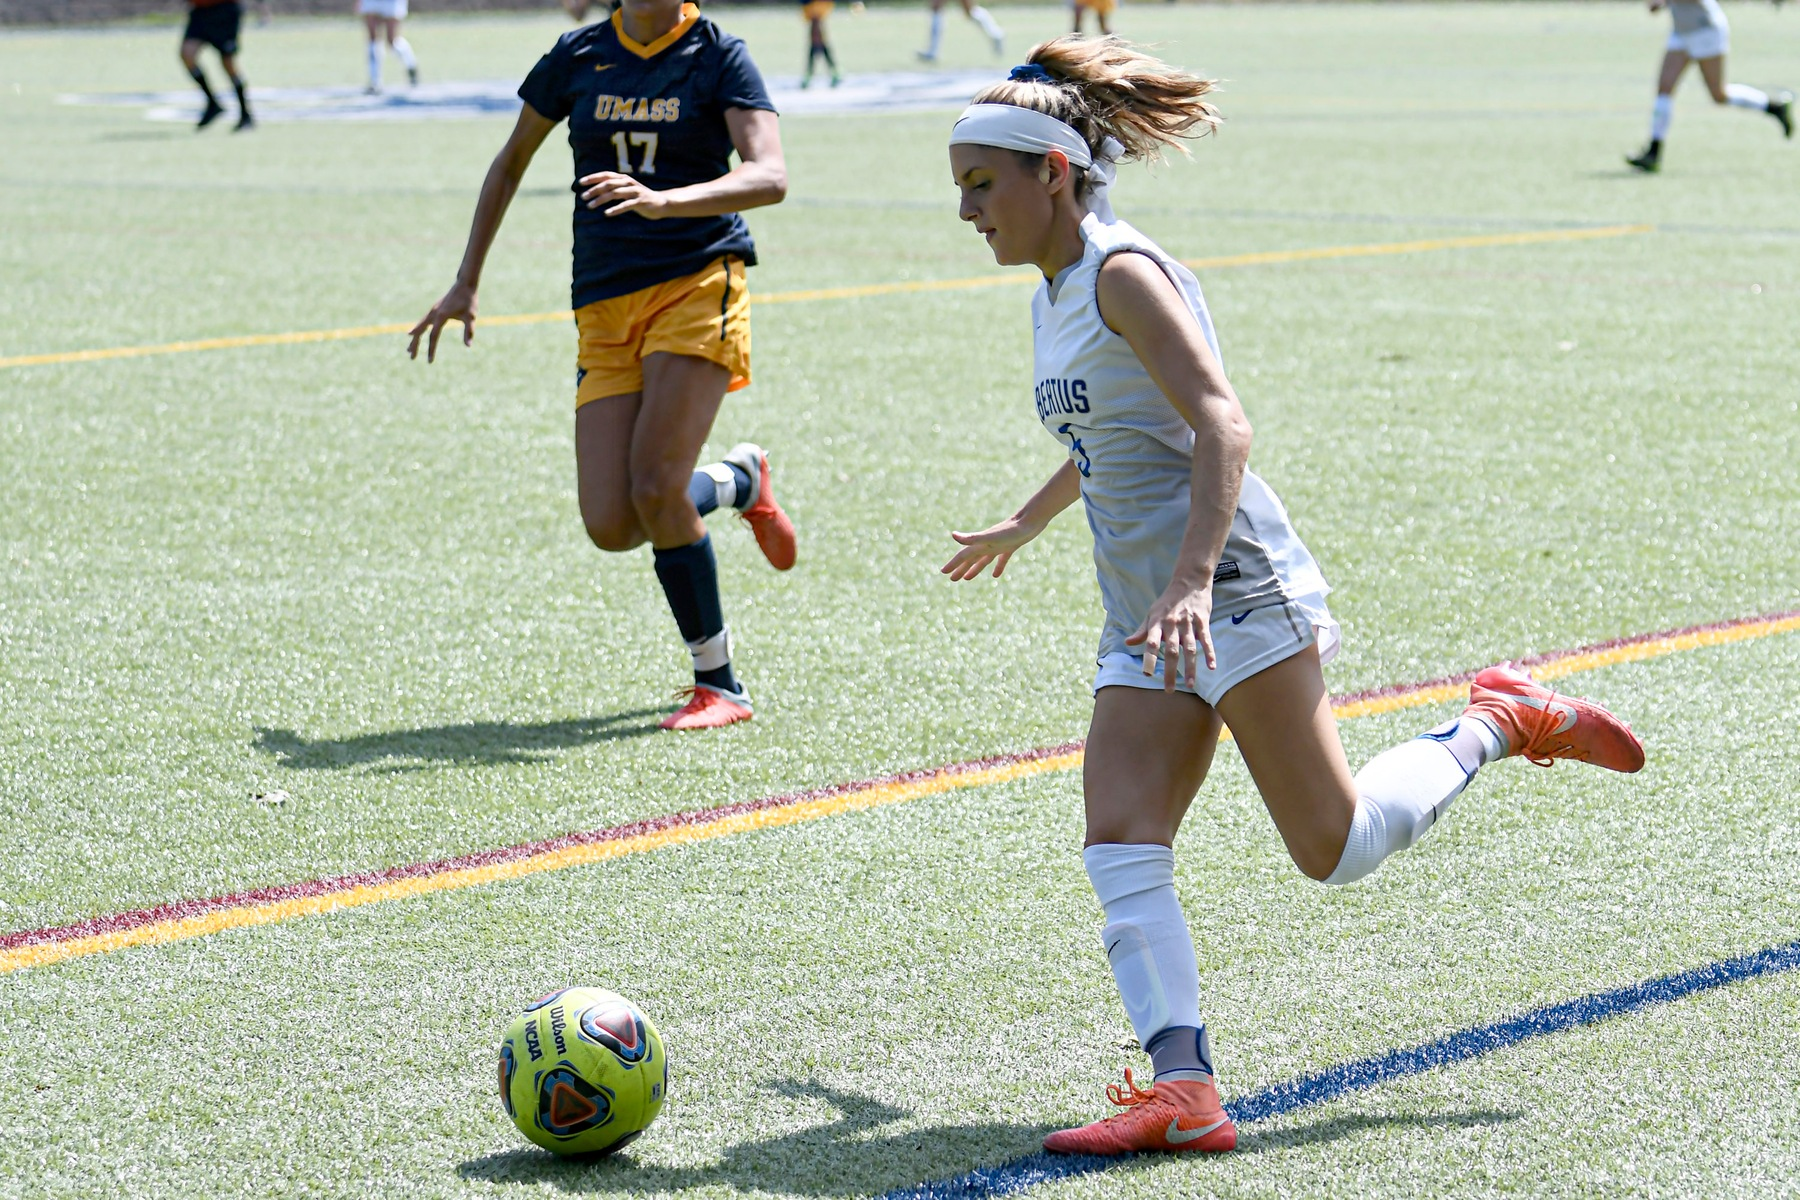 Women's Soccer Drops GNAC Contest to Colby Sawyer